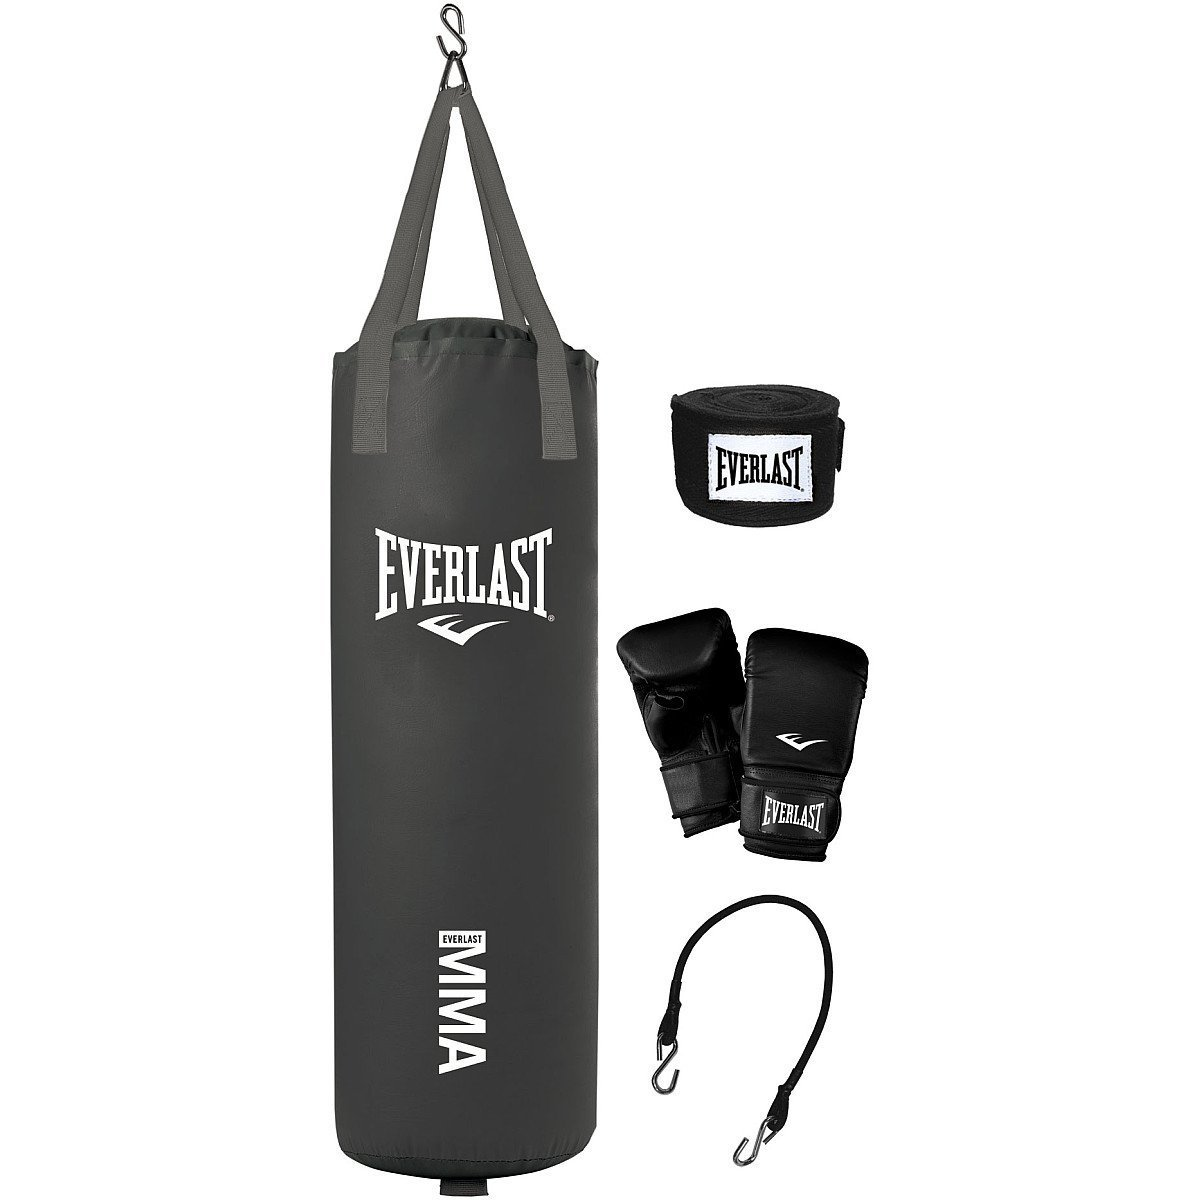 Everlast 70-Pound MMA Heavy-Bag Kit by Everlast